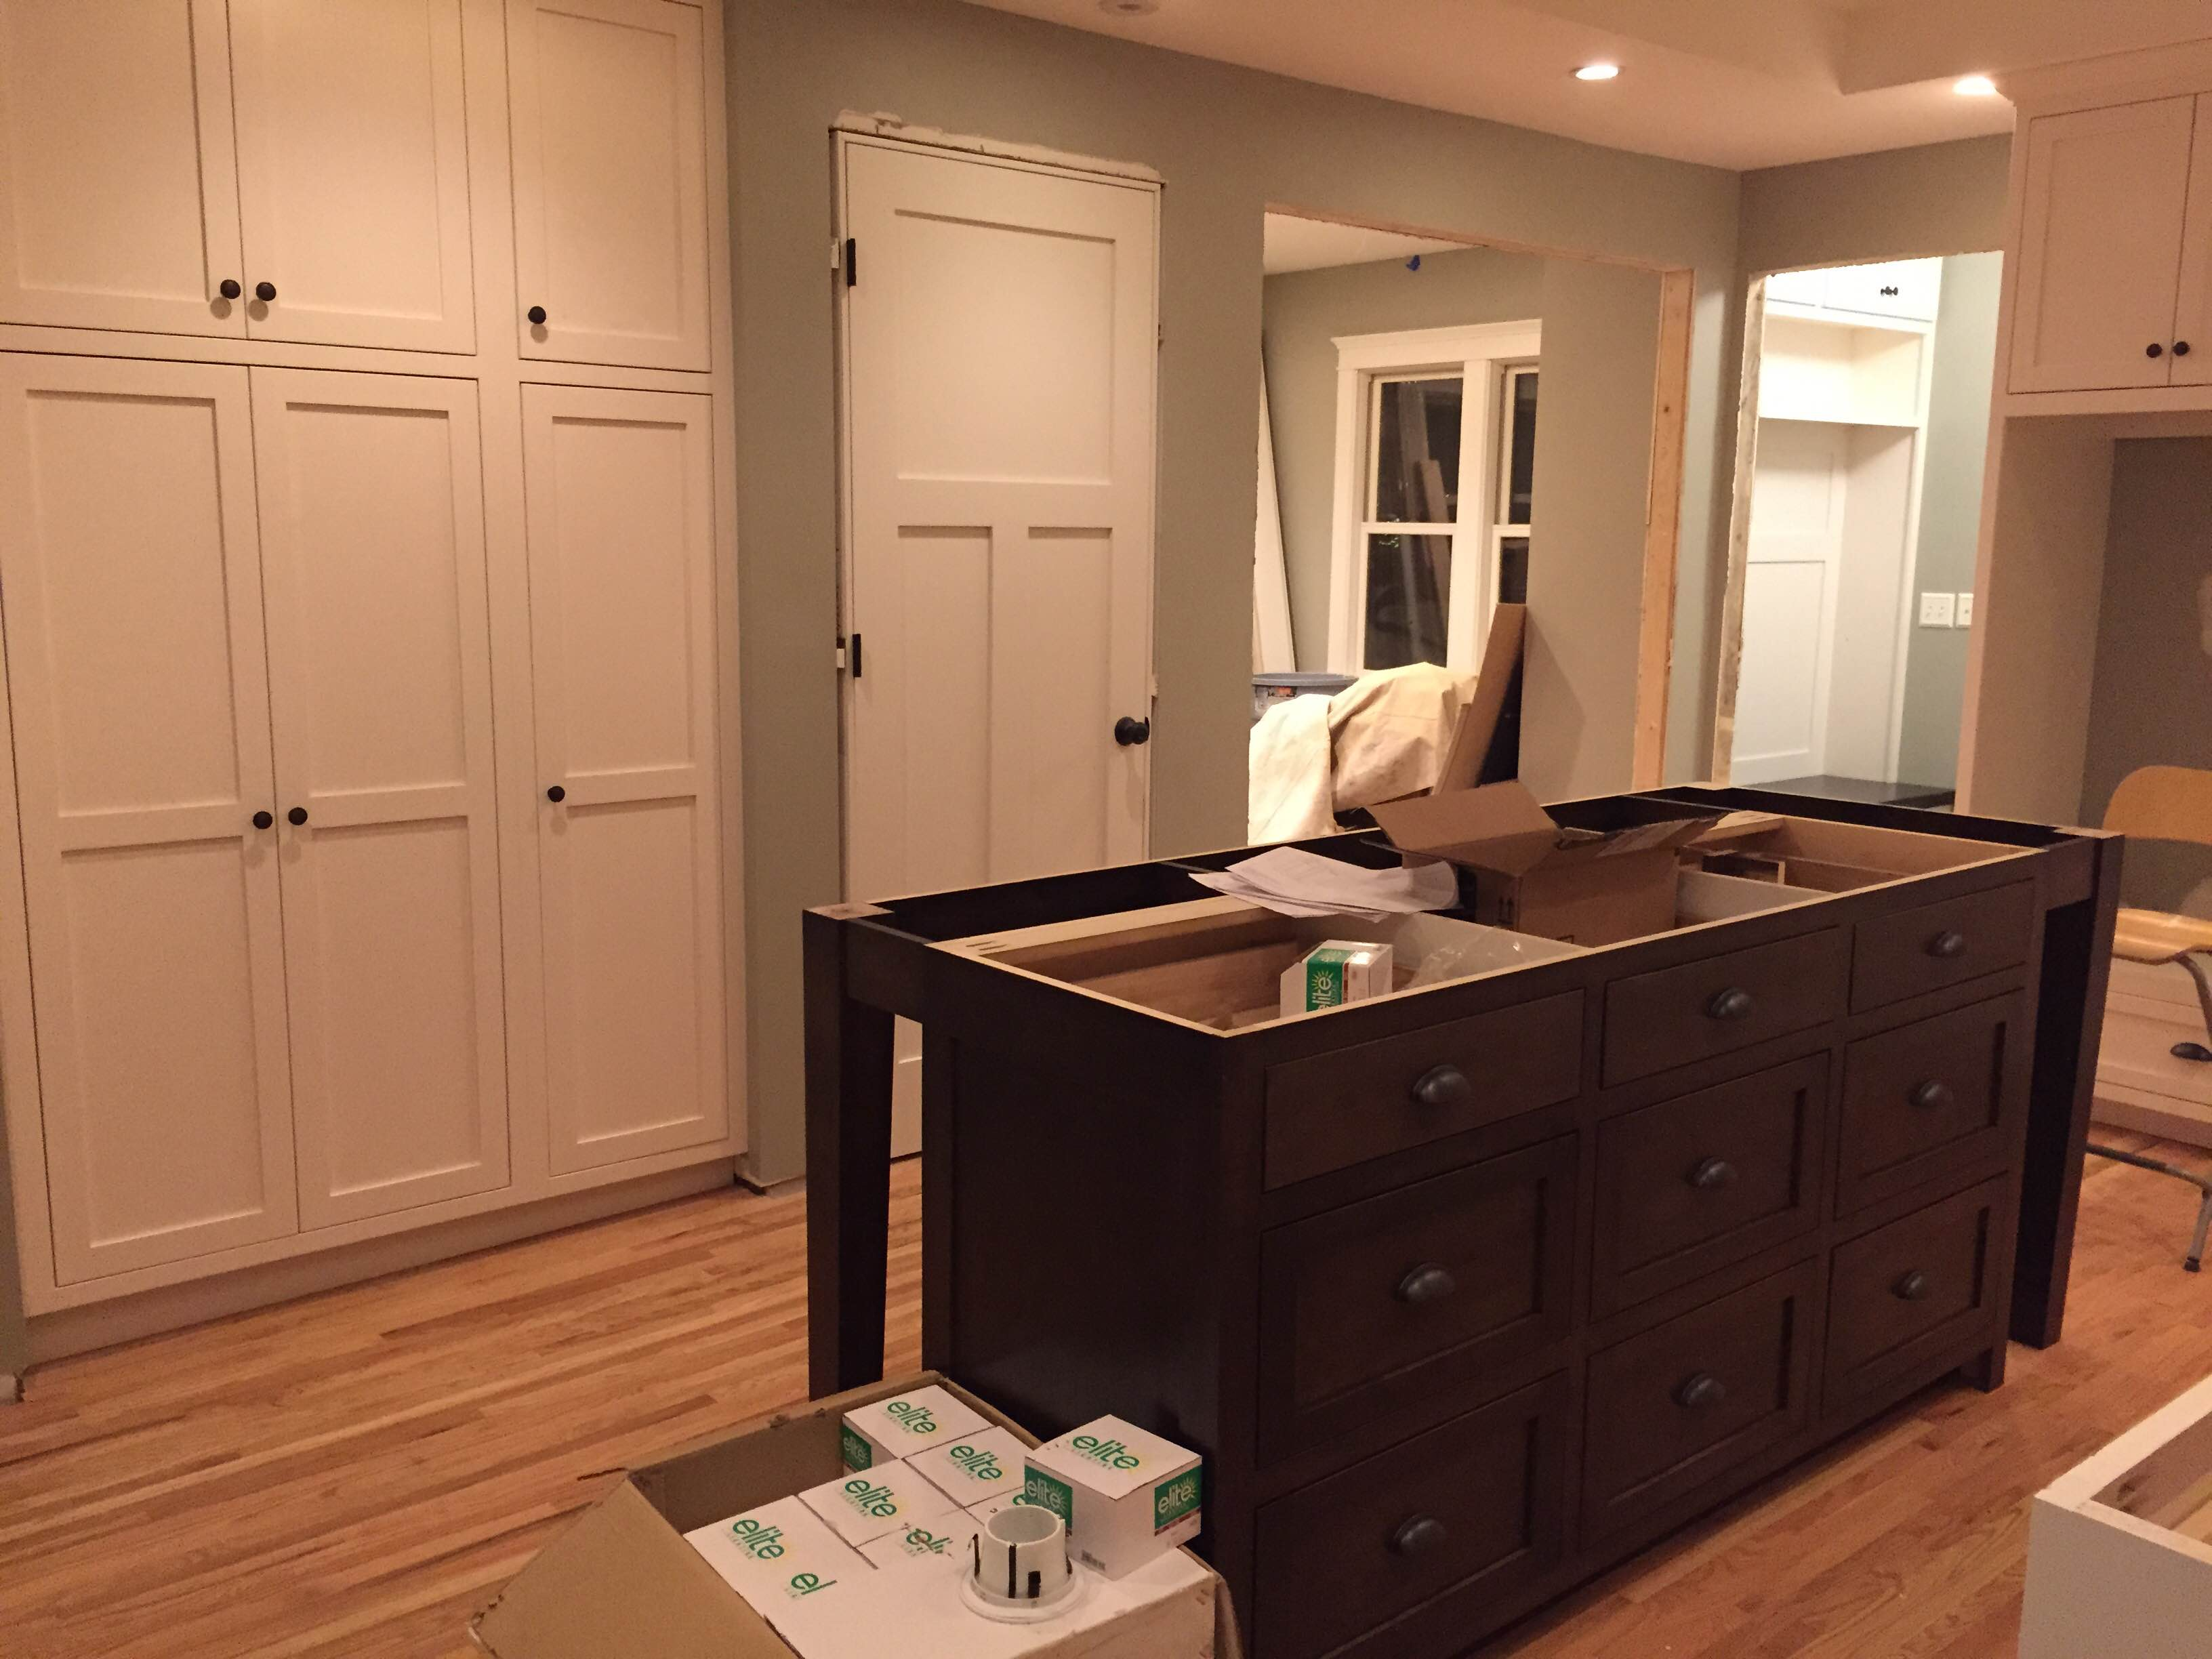 valley custom cabinets | kitchen cabinets remodel